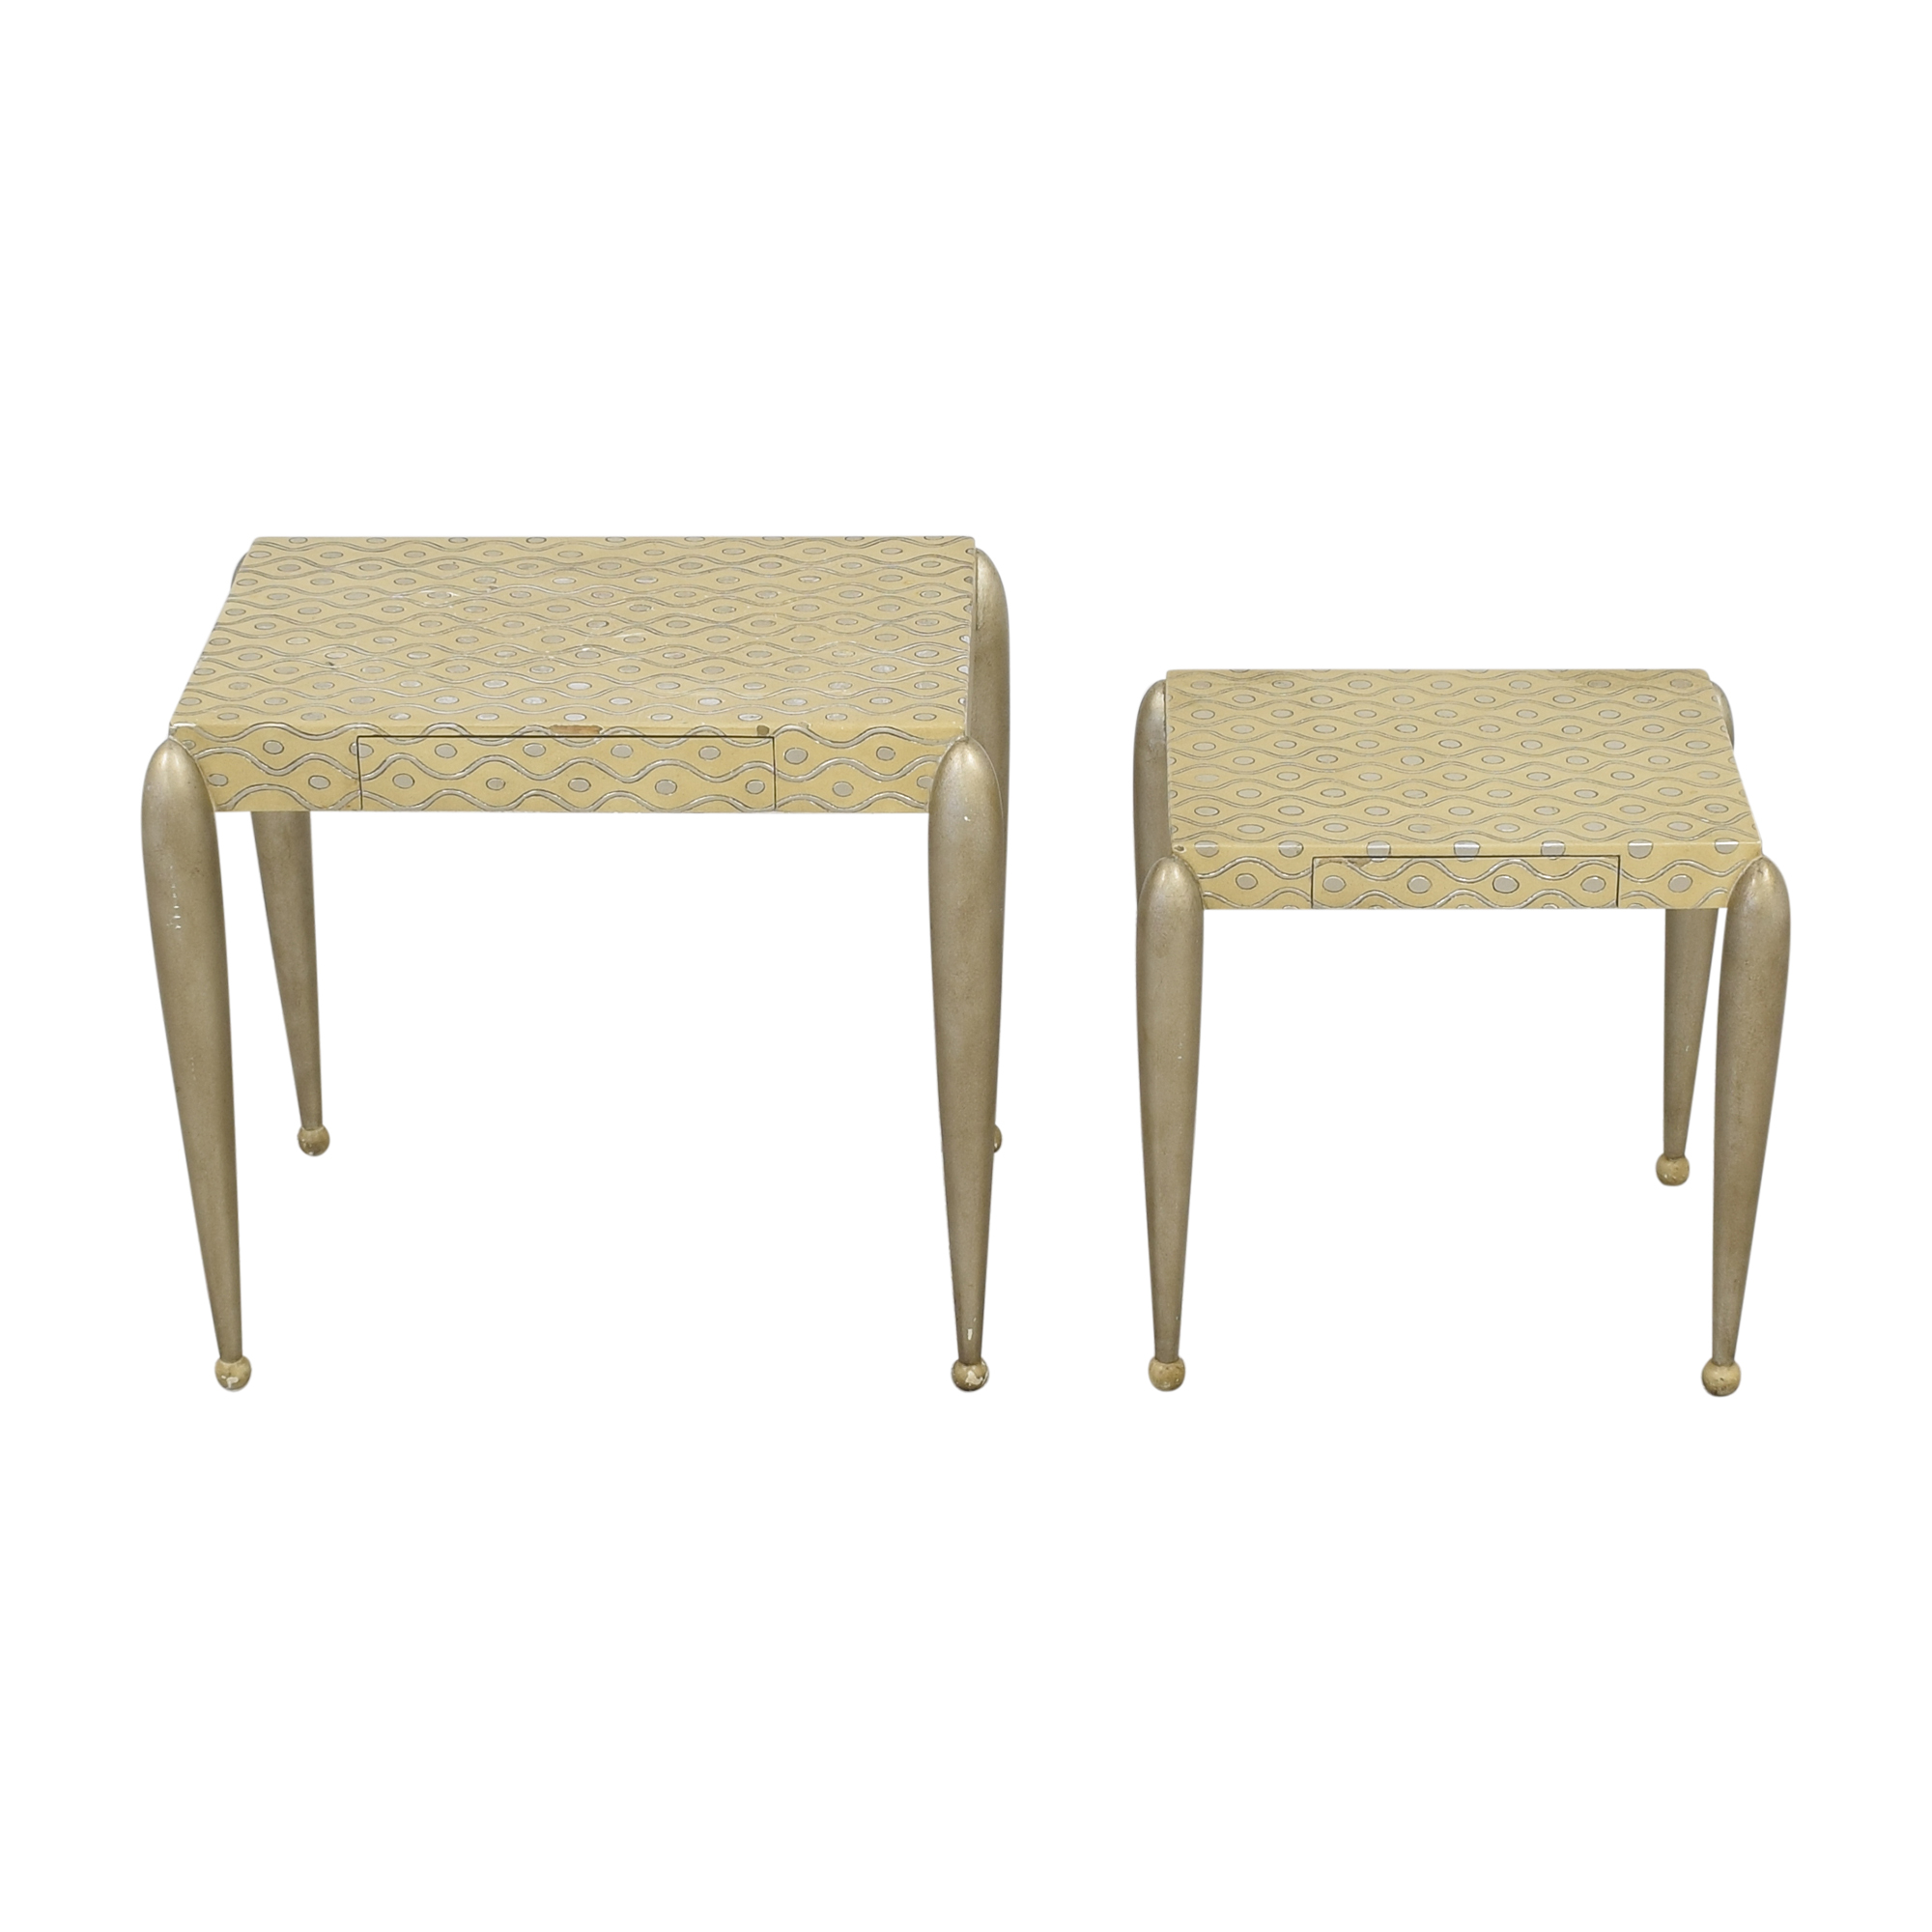 ABC Carpet & Home African Inspired Nesting Tables with Drawers nyc